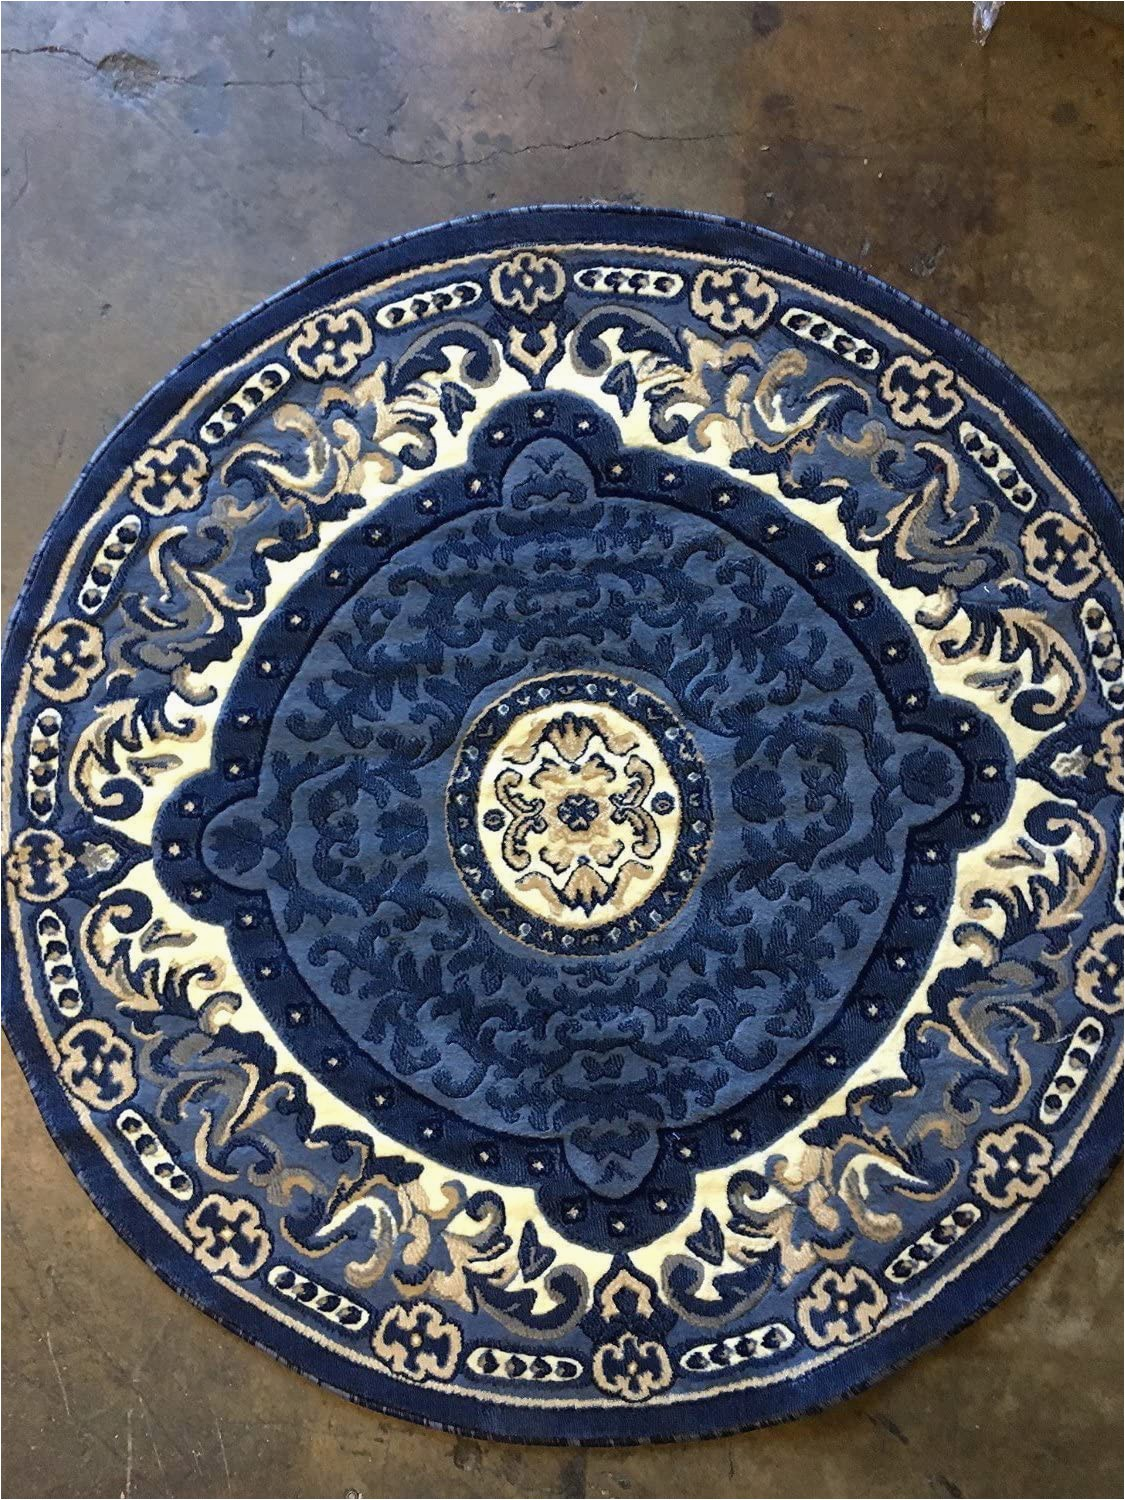 Large Round Blue Rug Carpet King Americana Traditional Round oriental Persian area Rug Blue Beige Design 101 7 Feet 3 Inch X 7 Feet 3 Inch